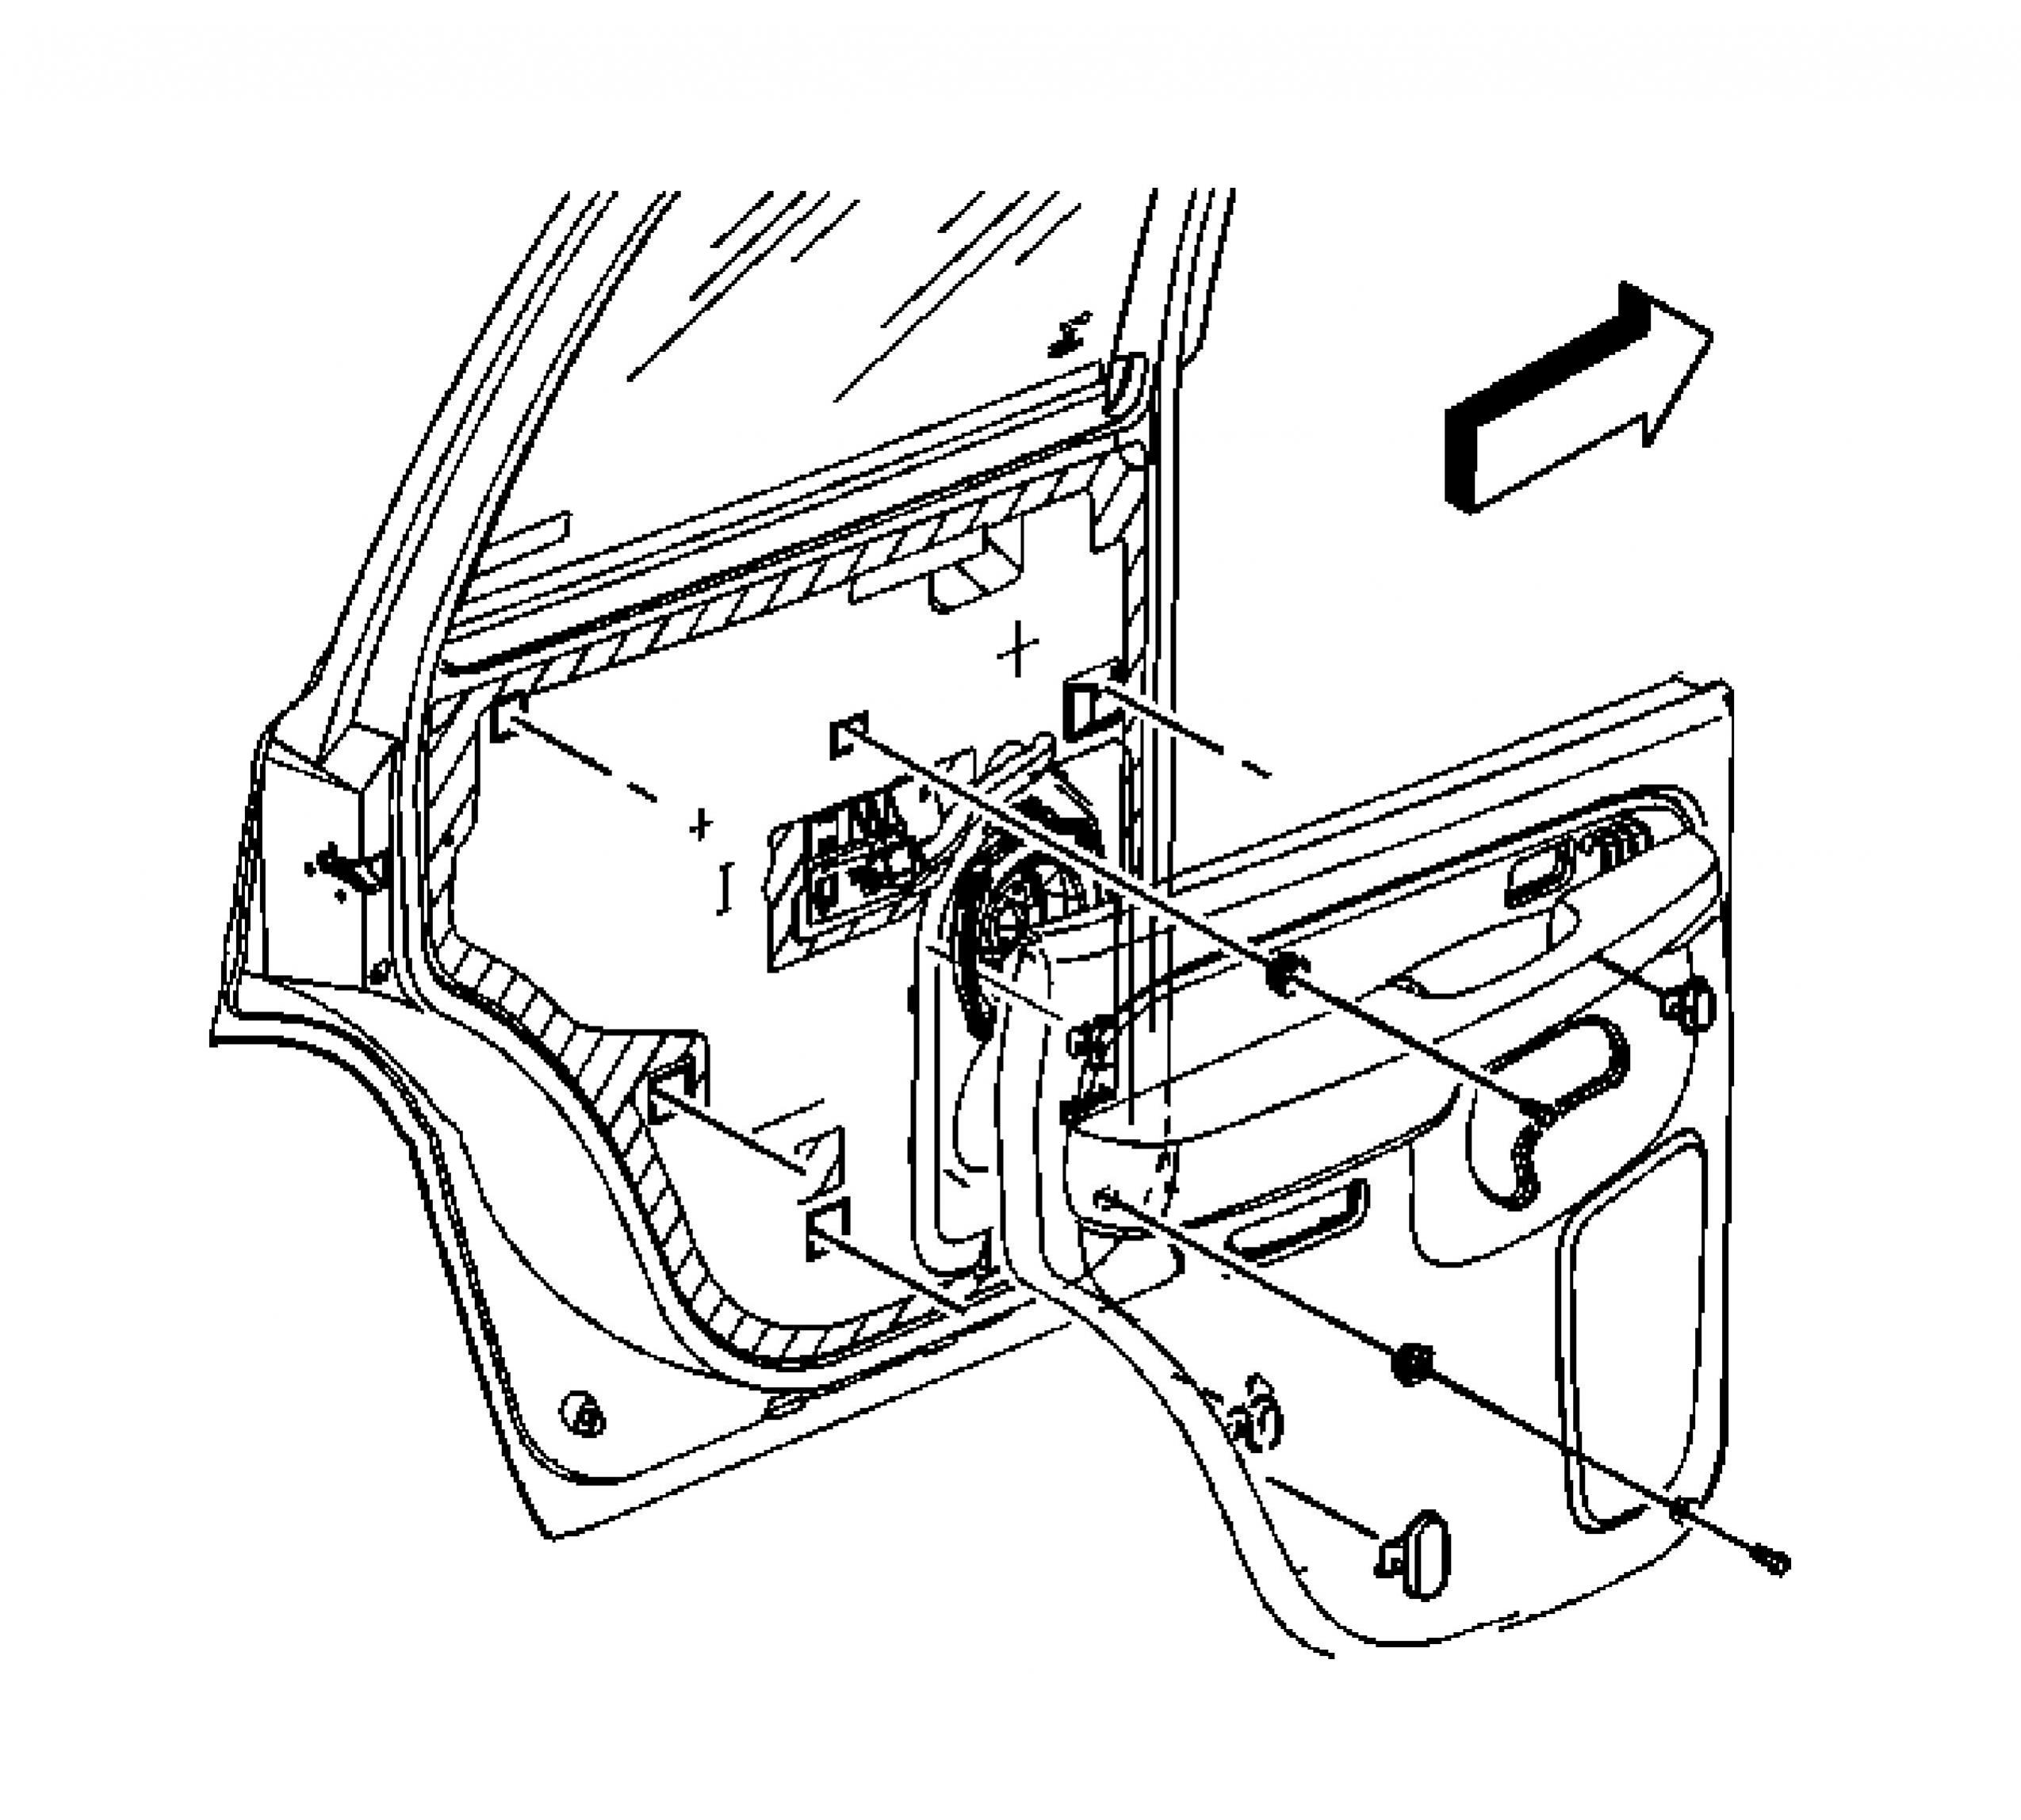 Chevy Tahoe Parts Diagram Engine Compartment